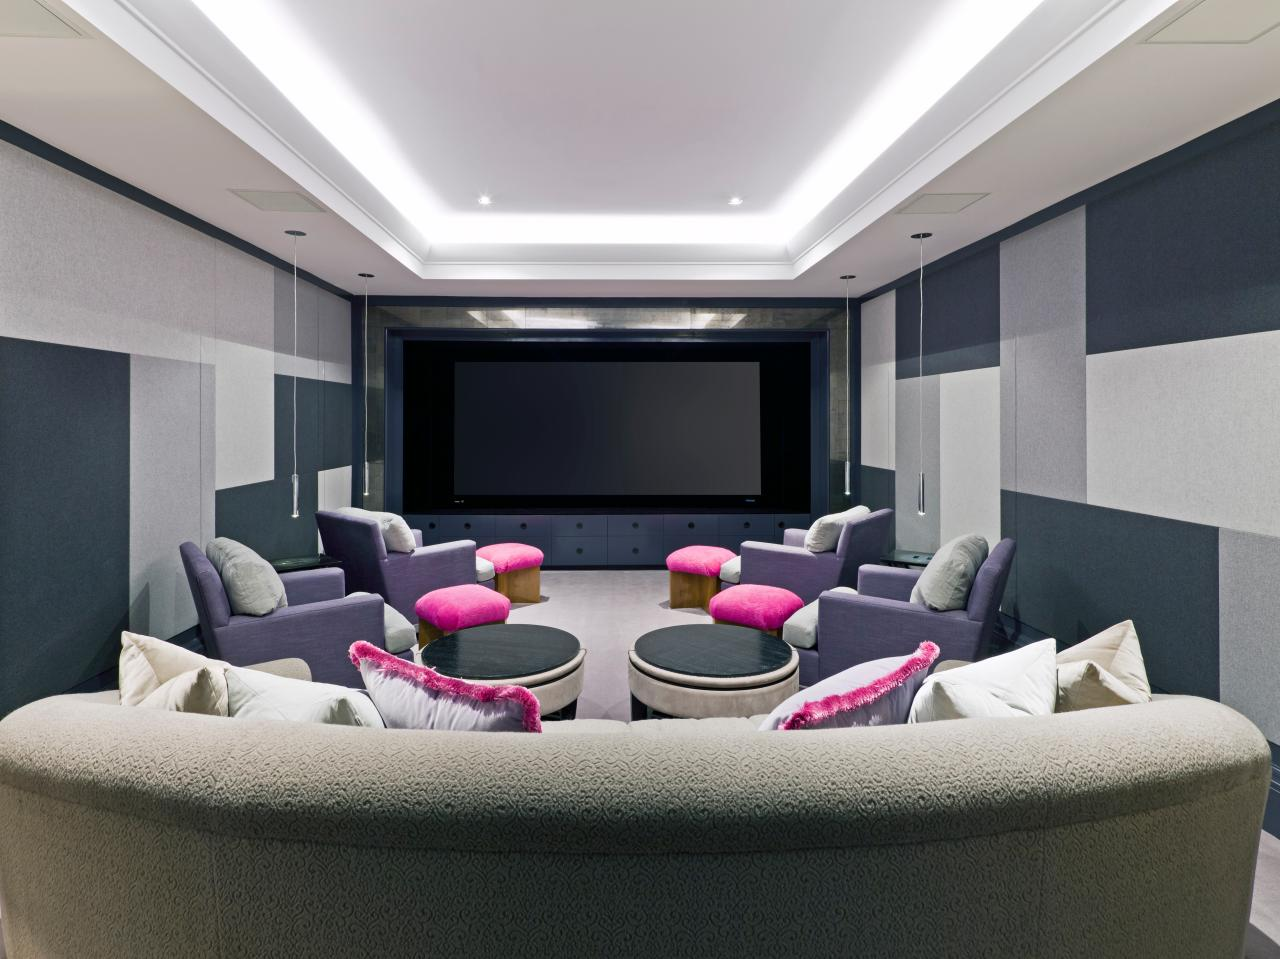 Home Theater Design Dallas Style Awesome Home Theater Design Ideas Pictures Tips & Options  Hgtv Design Inspiration